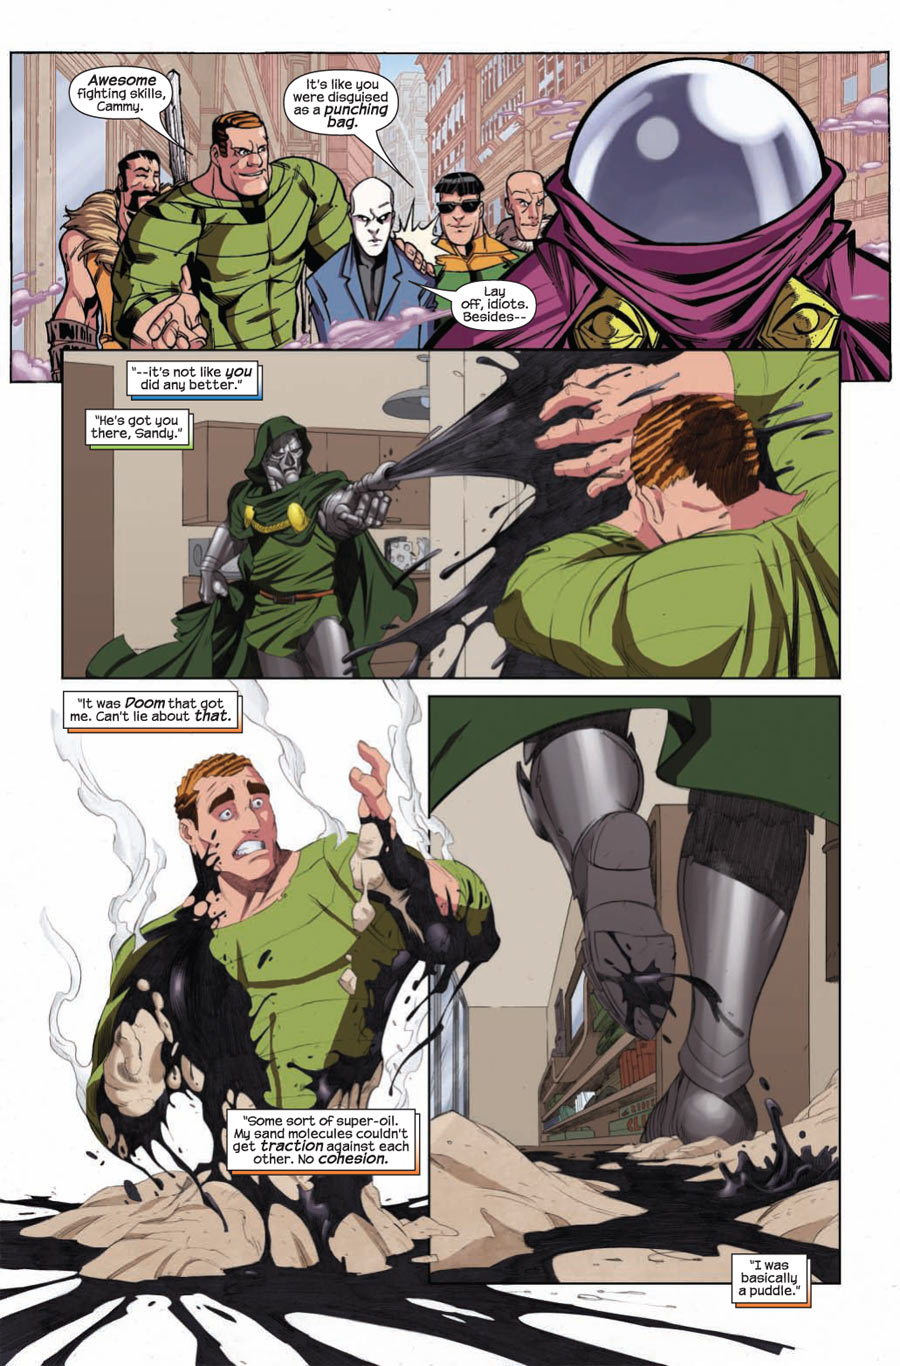 Doctor Doom vs. The Sinister Six (Doctor Doom And The Masters Of Evil #1)